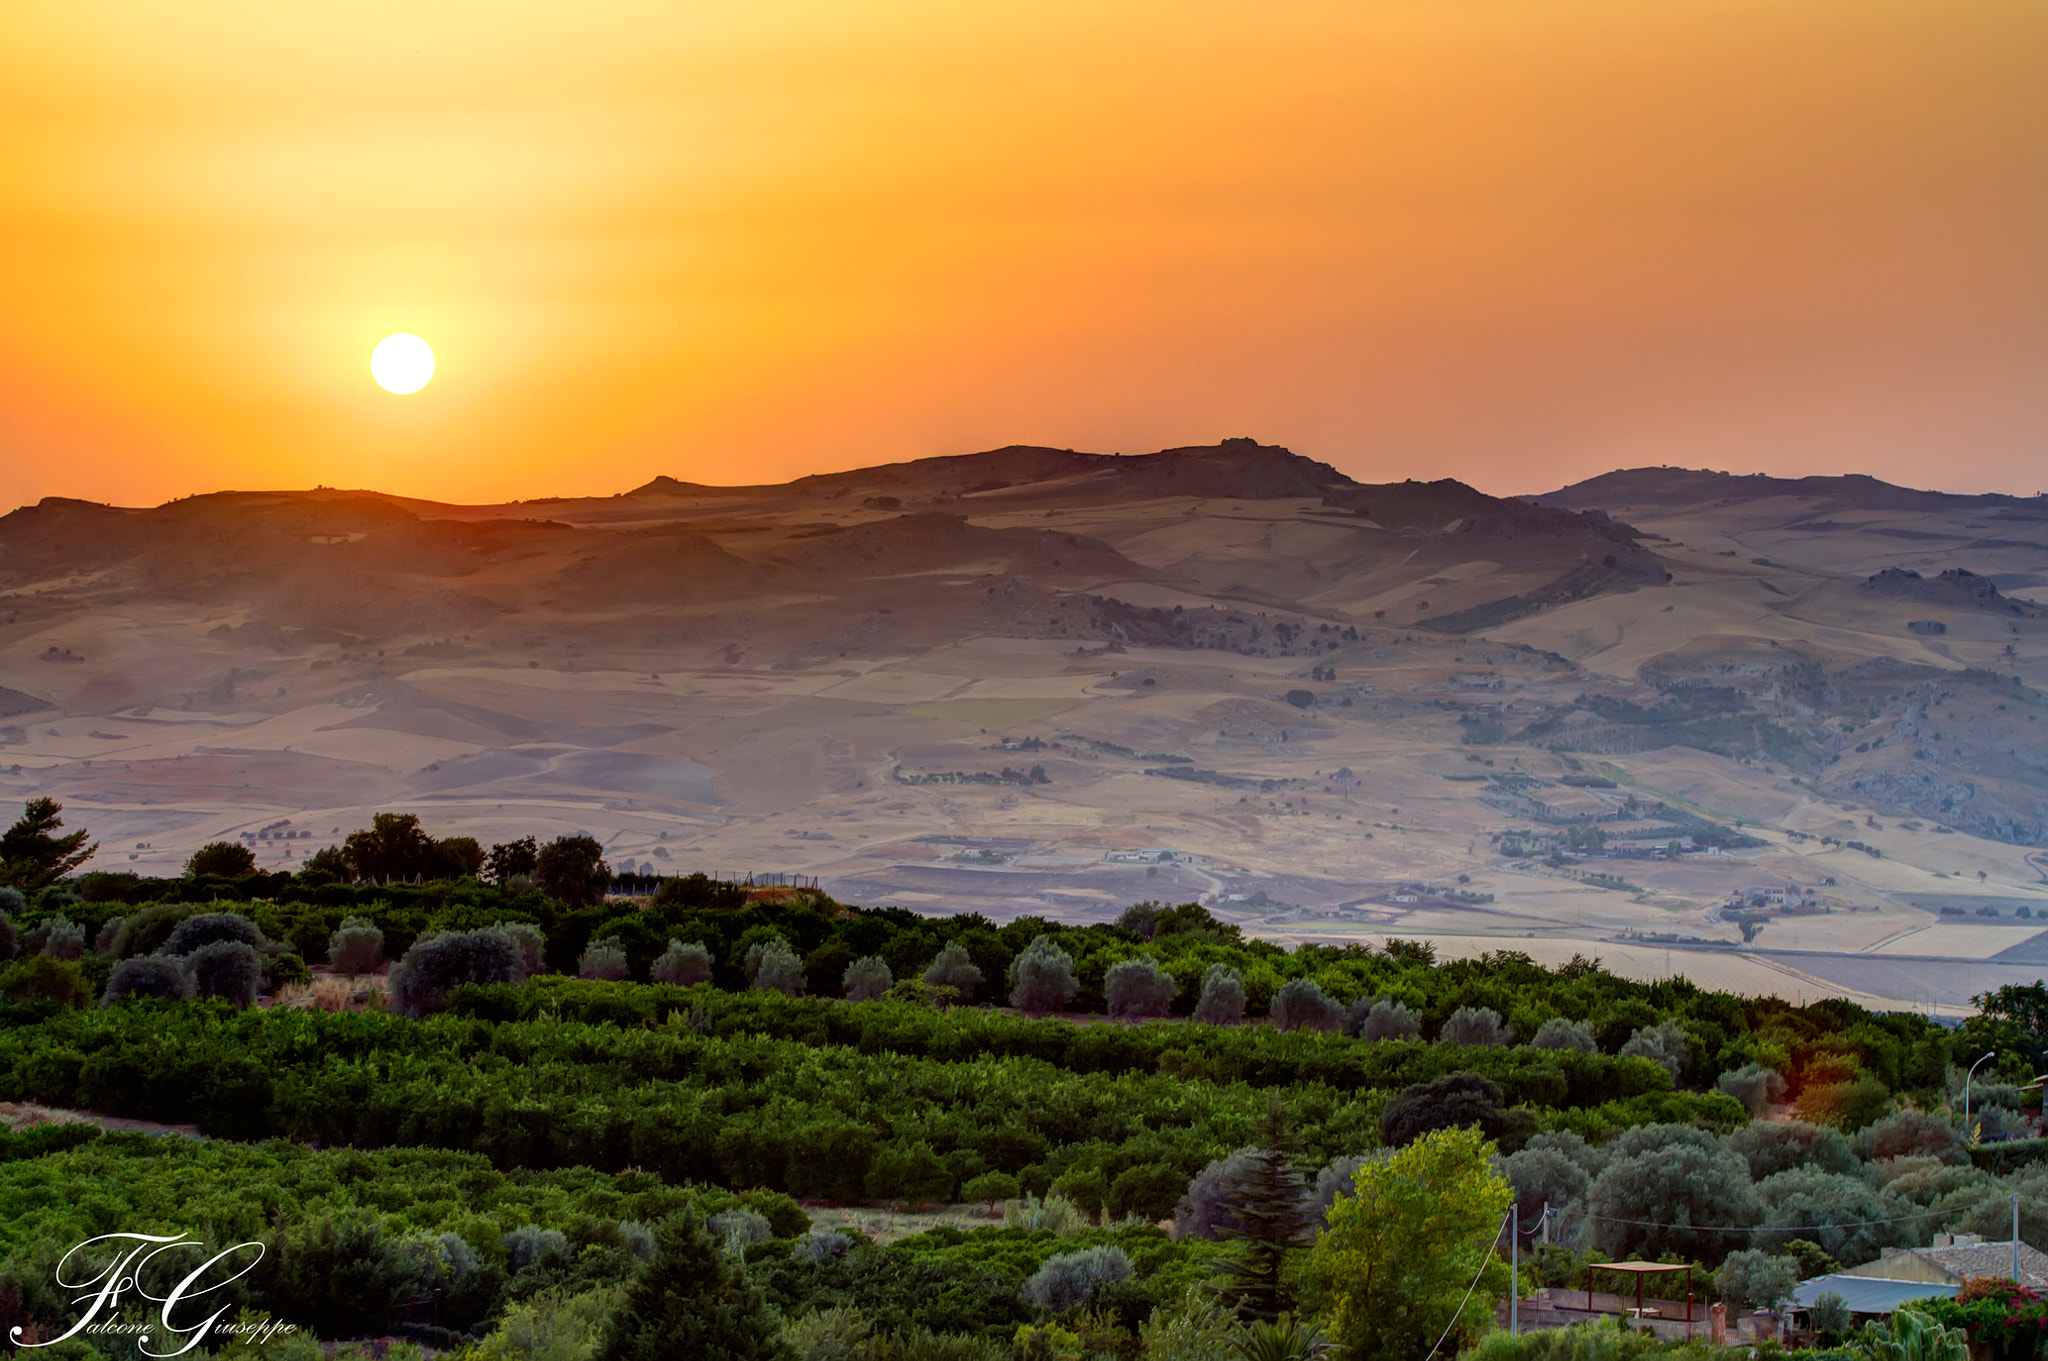 Photograph Sicily Sunset by Falcone Giuseppe on 500px